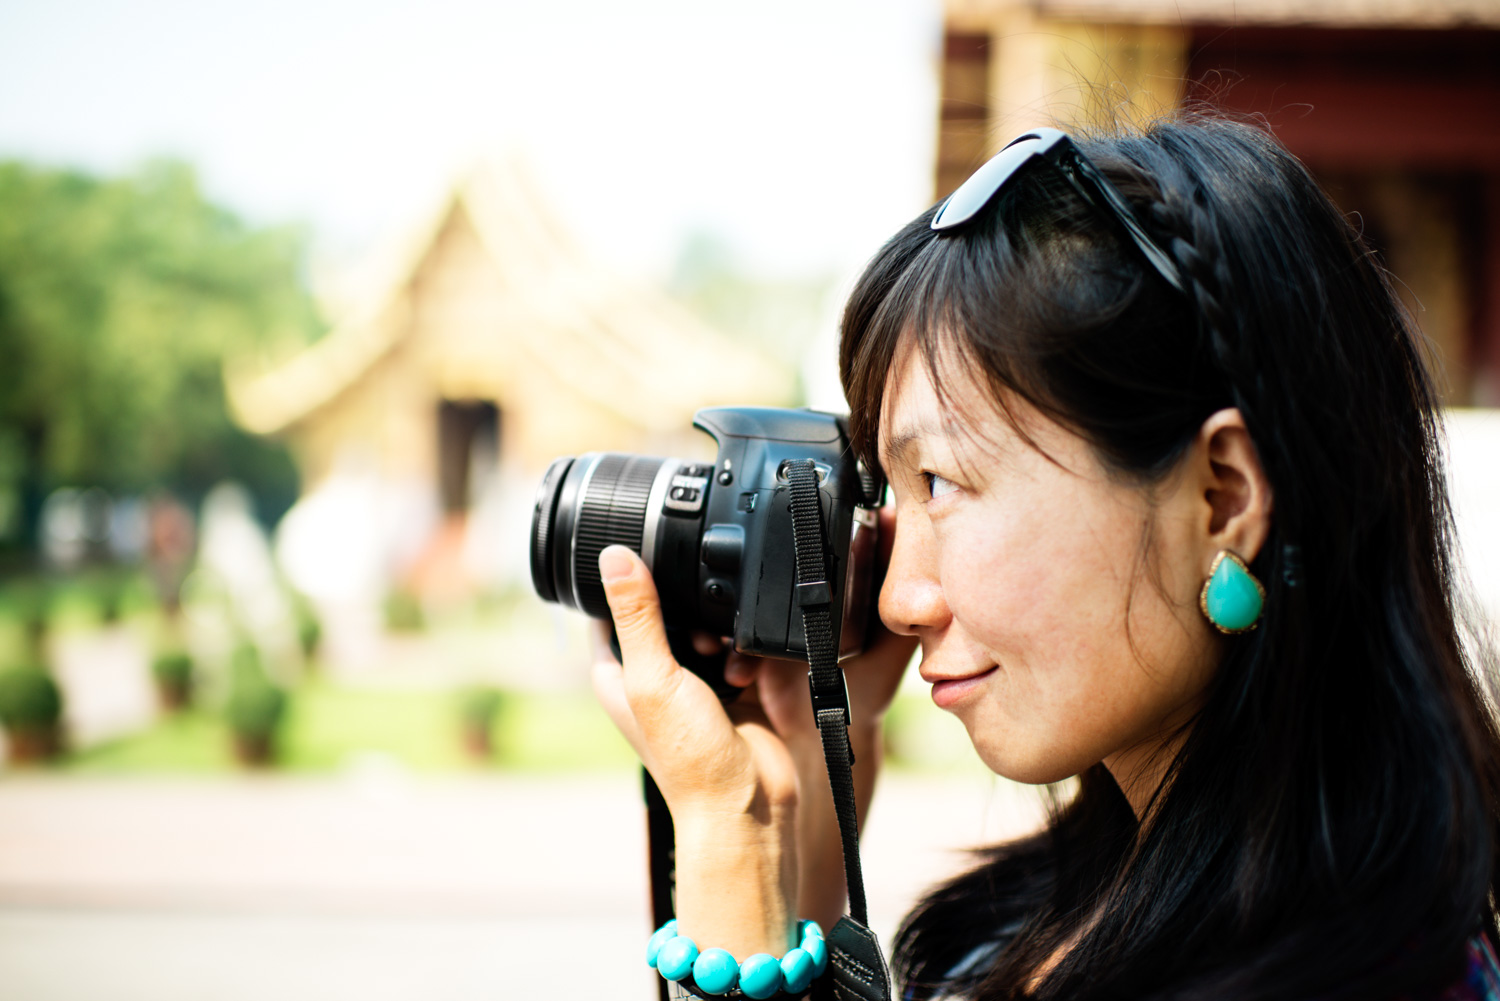 Chinese Woman Photographer - Viewfinder Image Blurry? You May Need to Adjust Your Camera's Diopter - Here's How